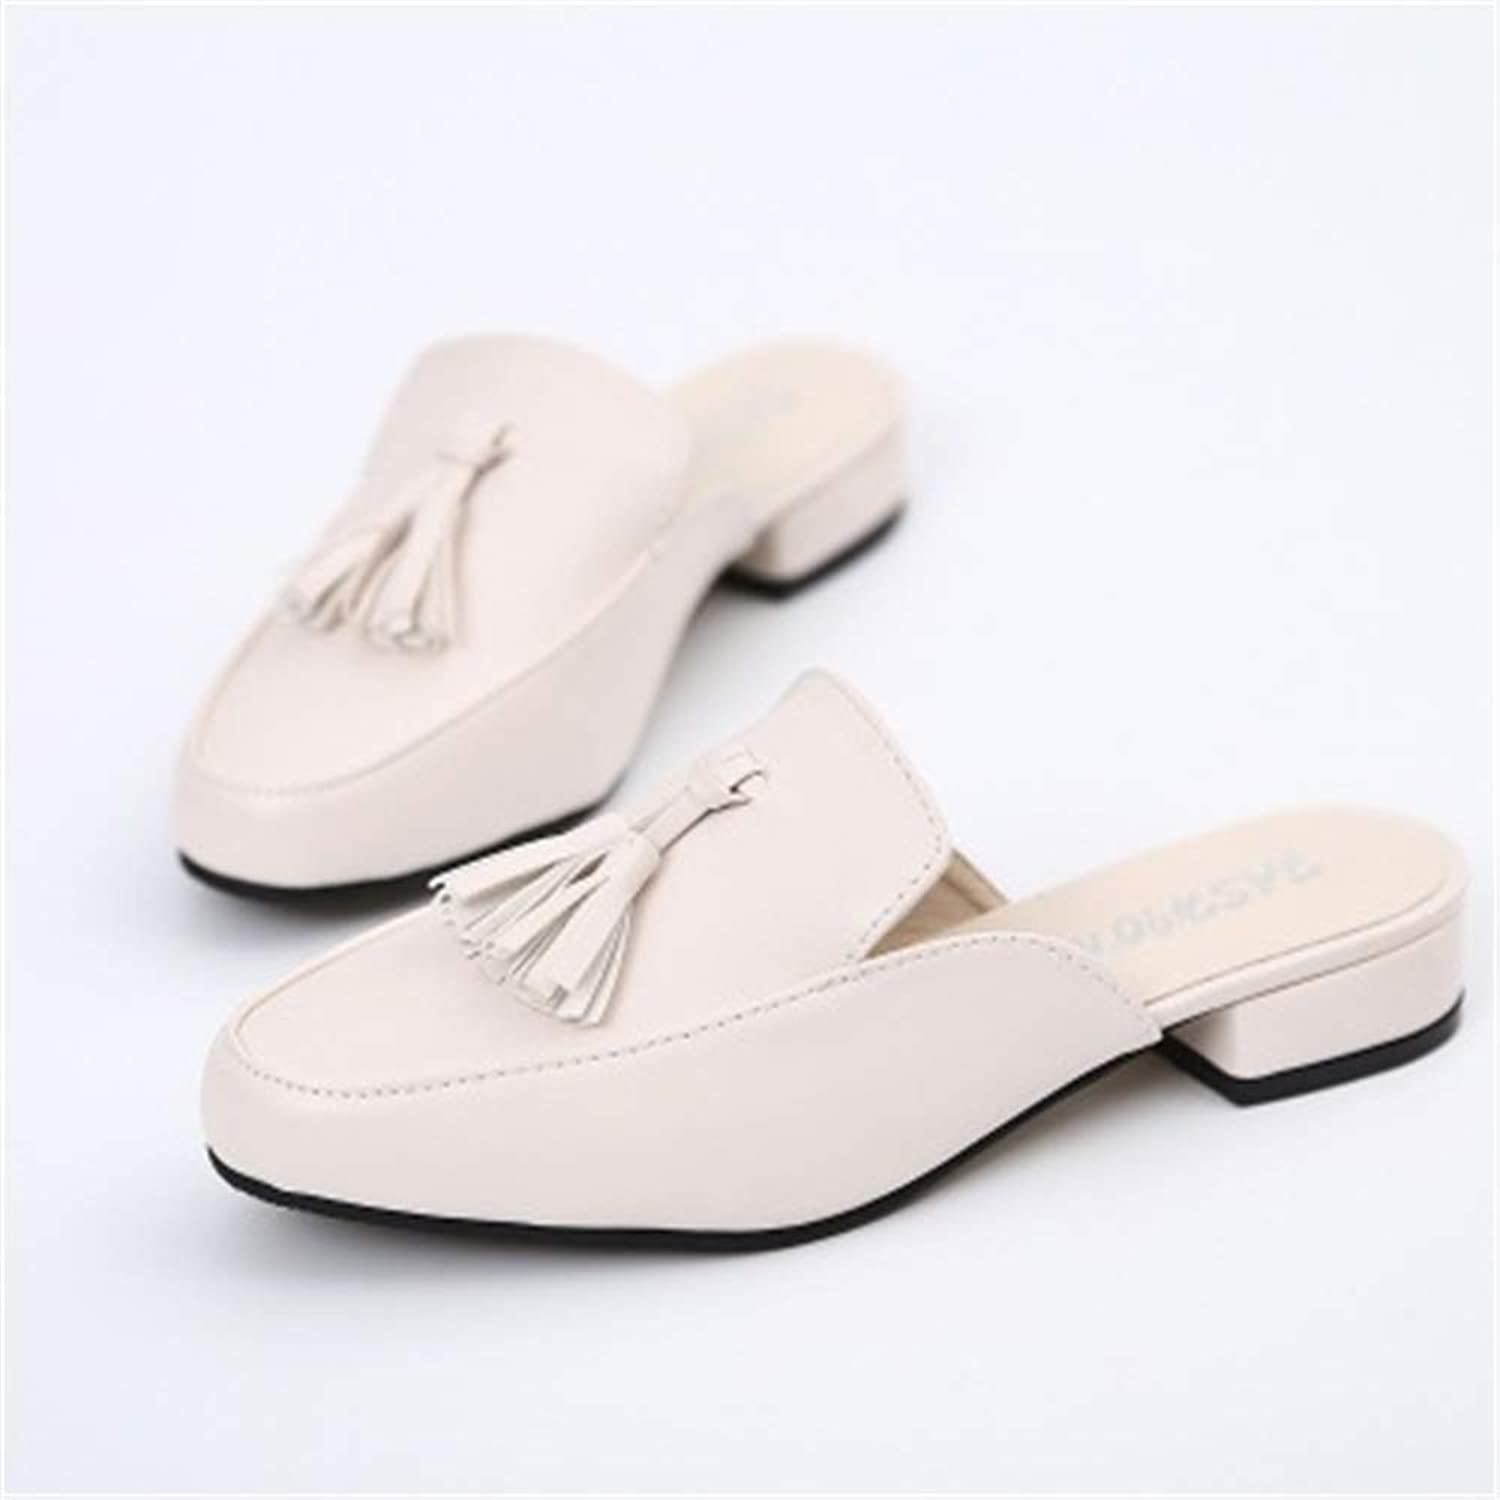 Duduxiaomaibu Mule Slippers Women,Slides Backless Dress Sandals